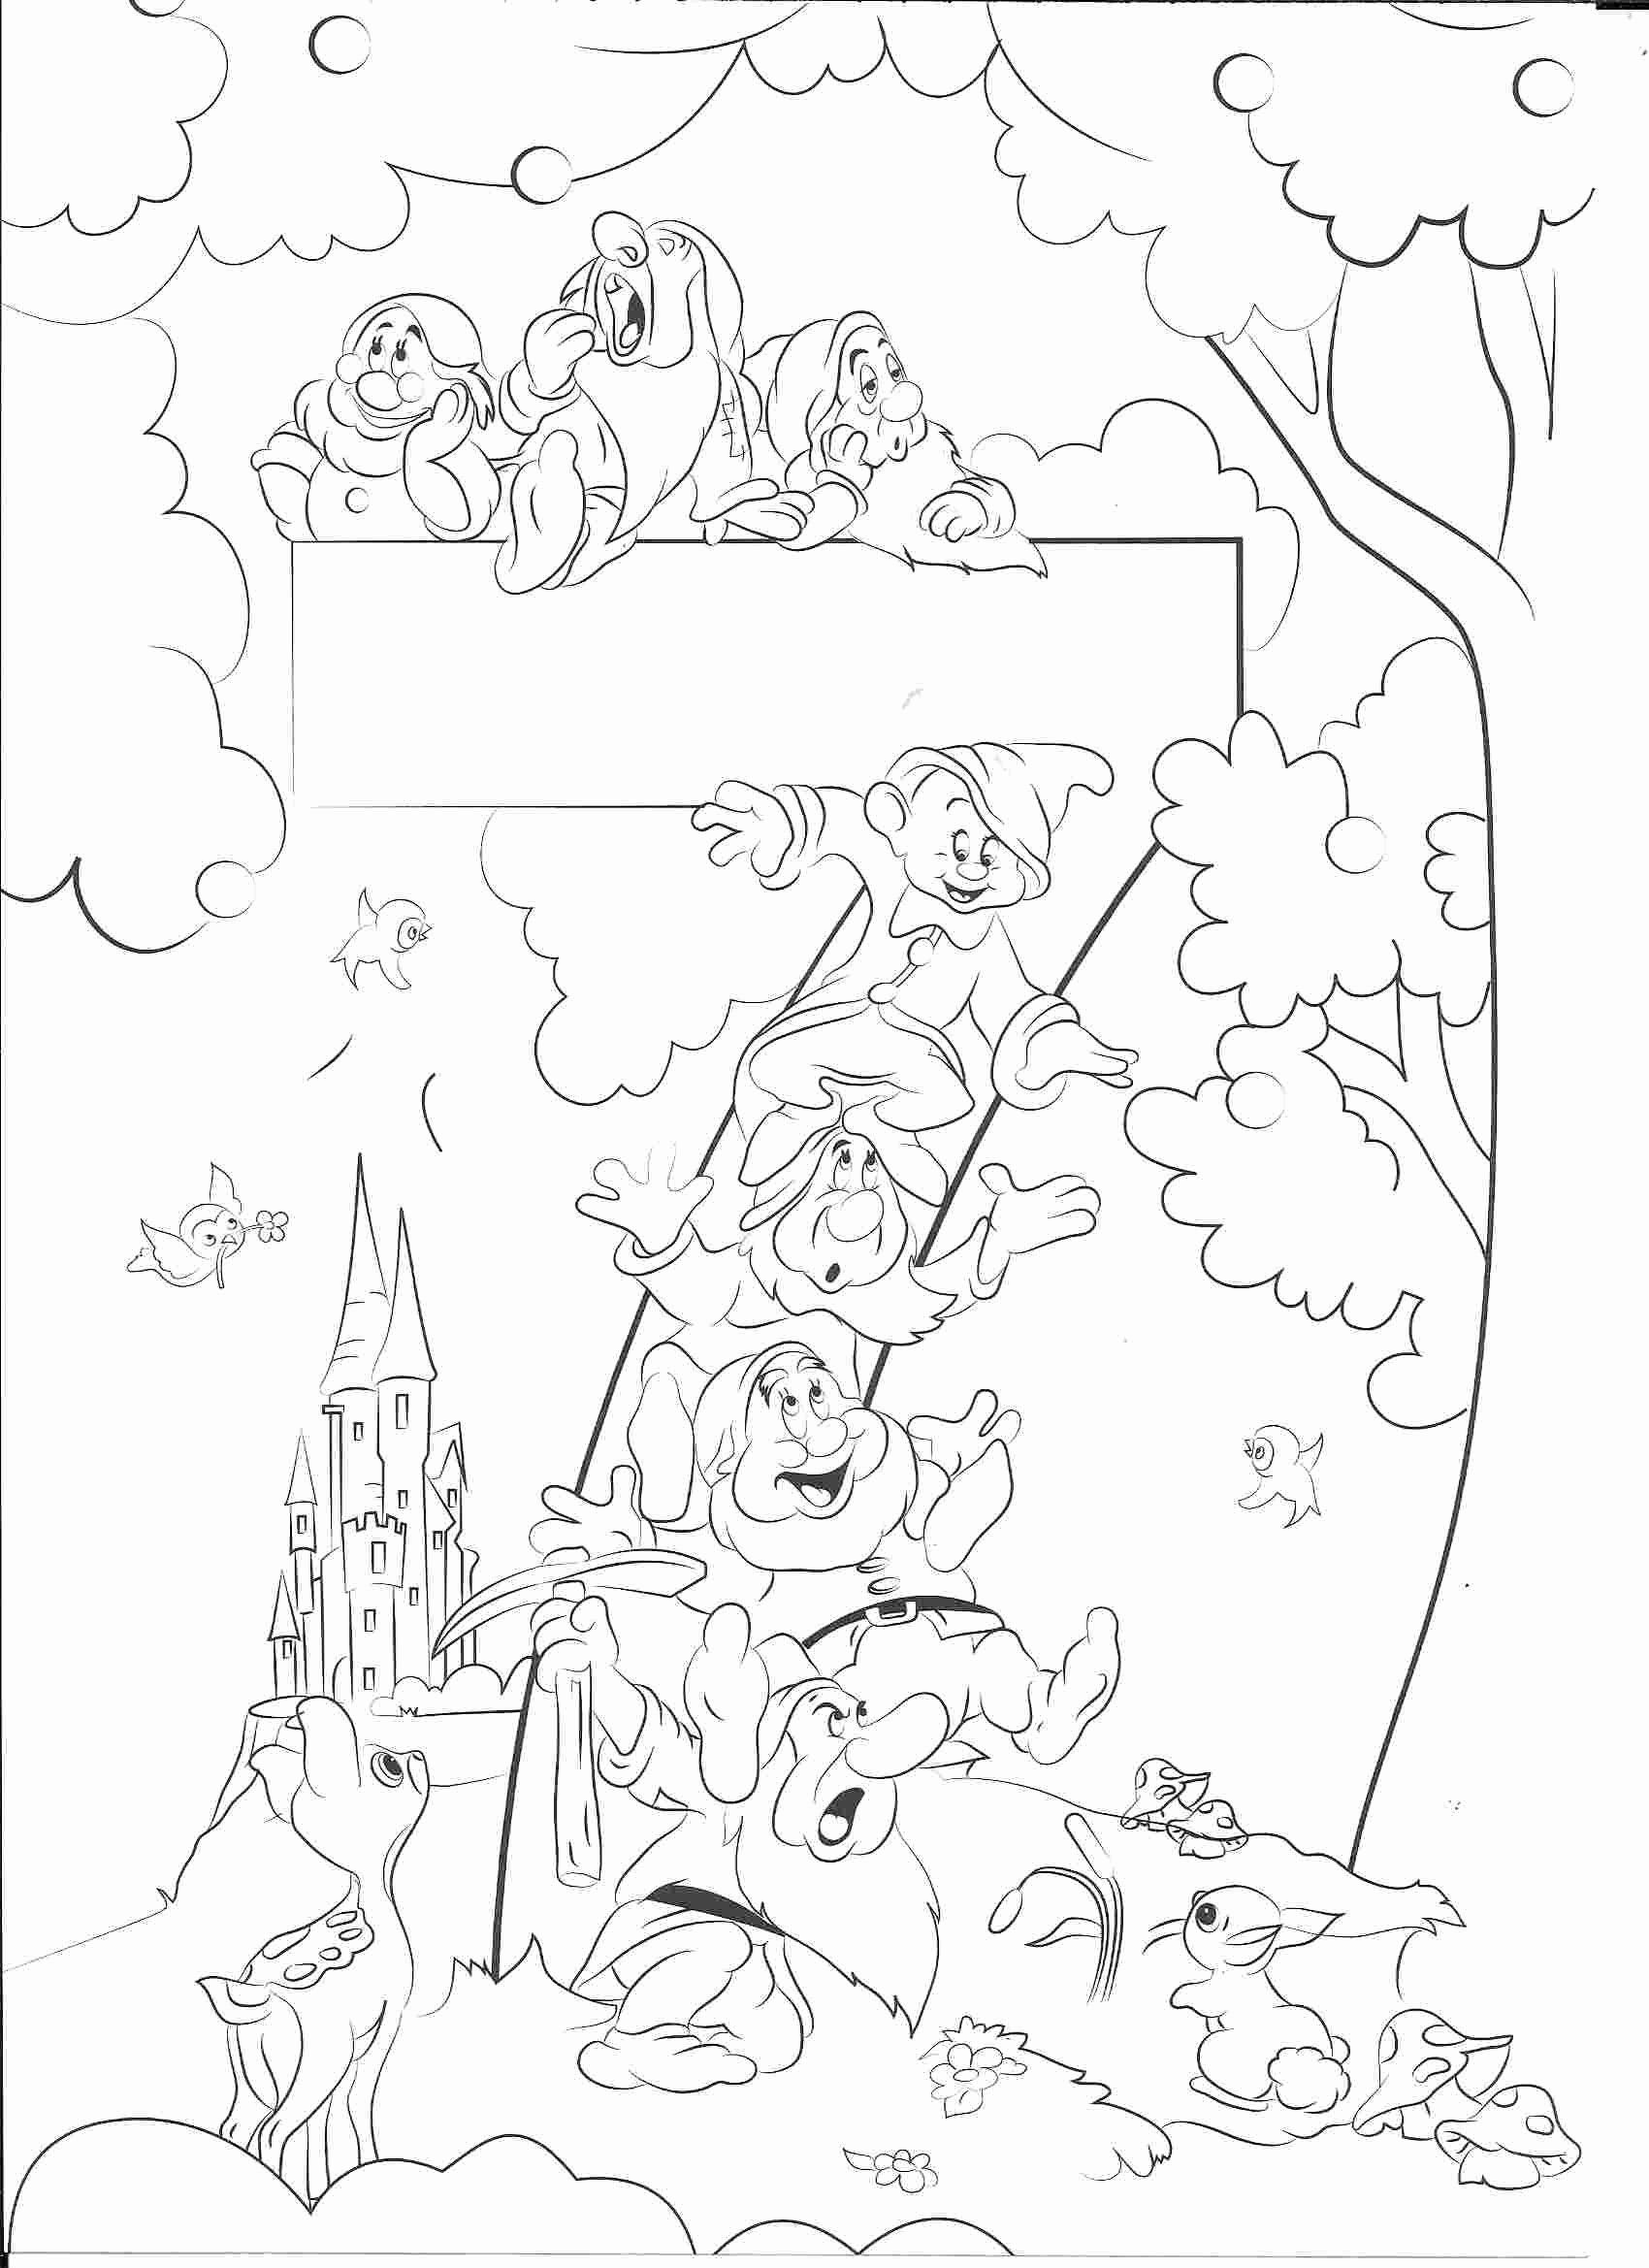 Print Free Coloring Pages Disney Beautiful Disney Abc Coloring Pages Coloring Page C Disney Coloring Pages Printables Abc Coloring Pages Disney Coloring Sheets